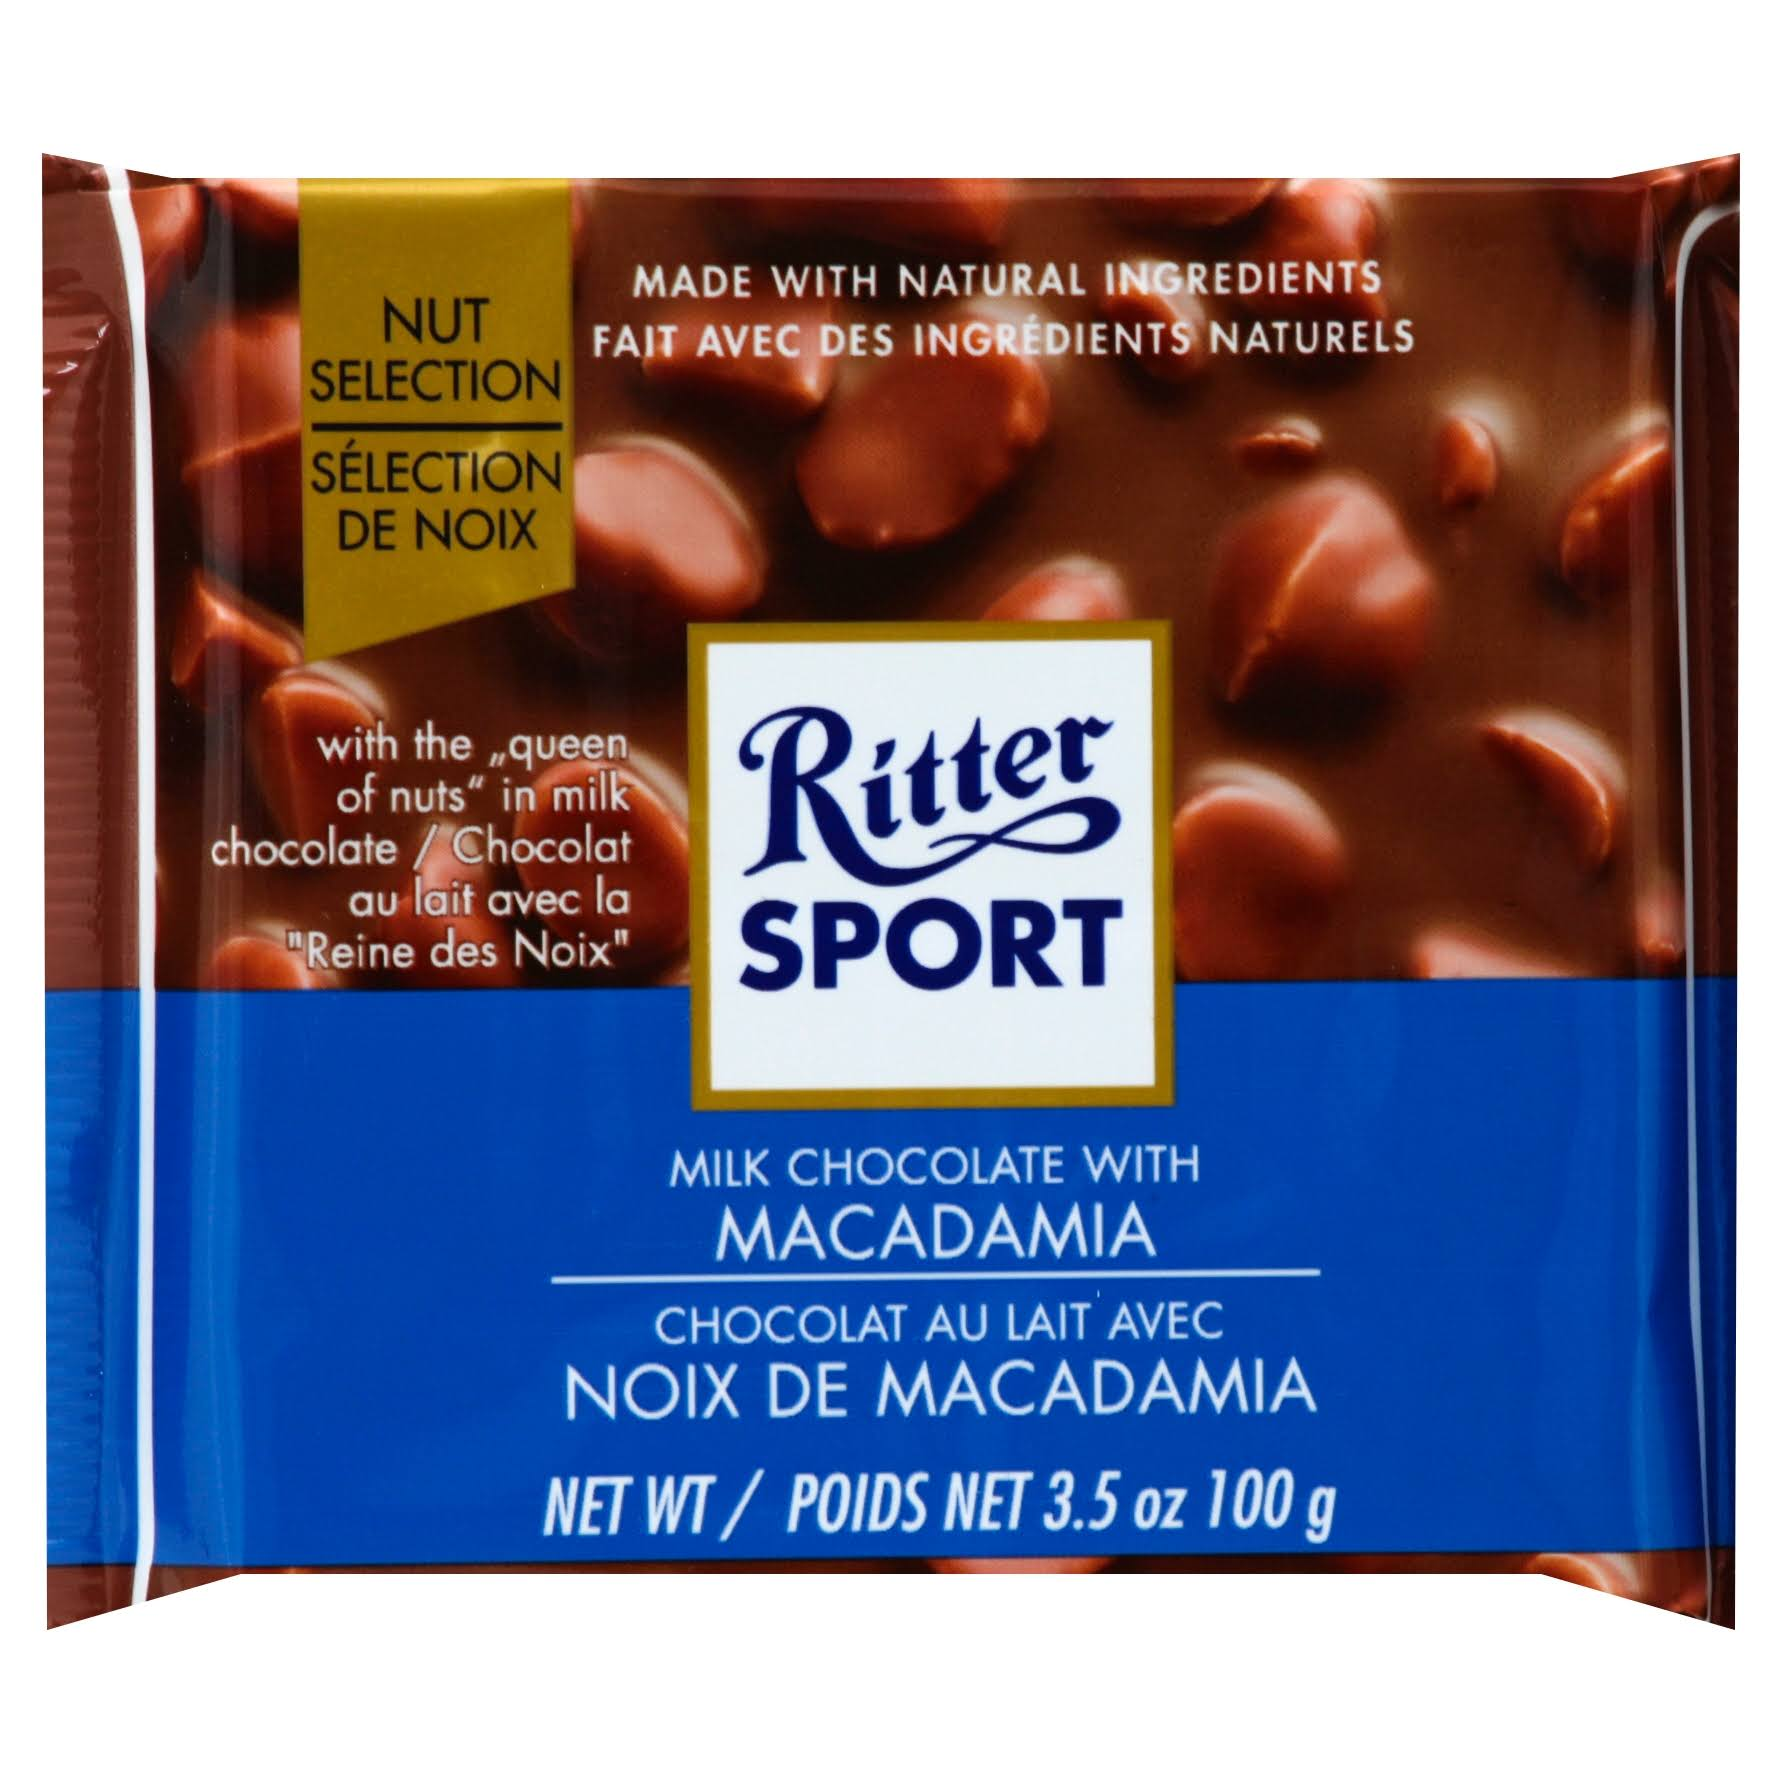 Ritter Sport Milk Chocolate, with Macadamia, Knick-Pack - 3.5 oz